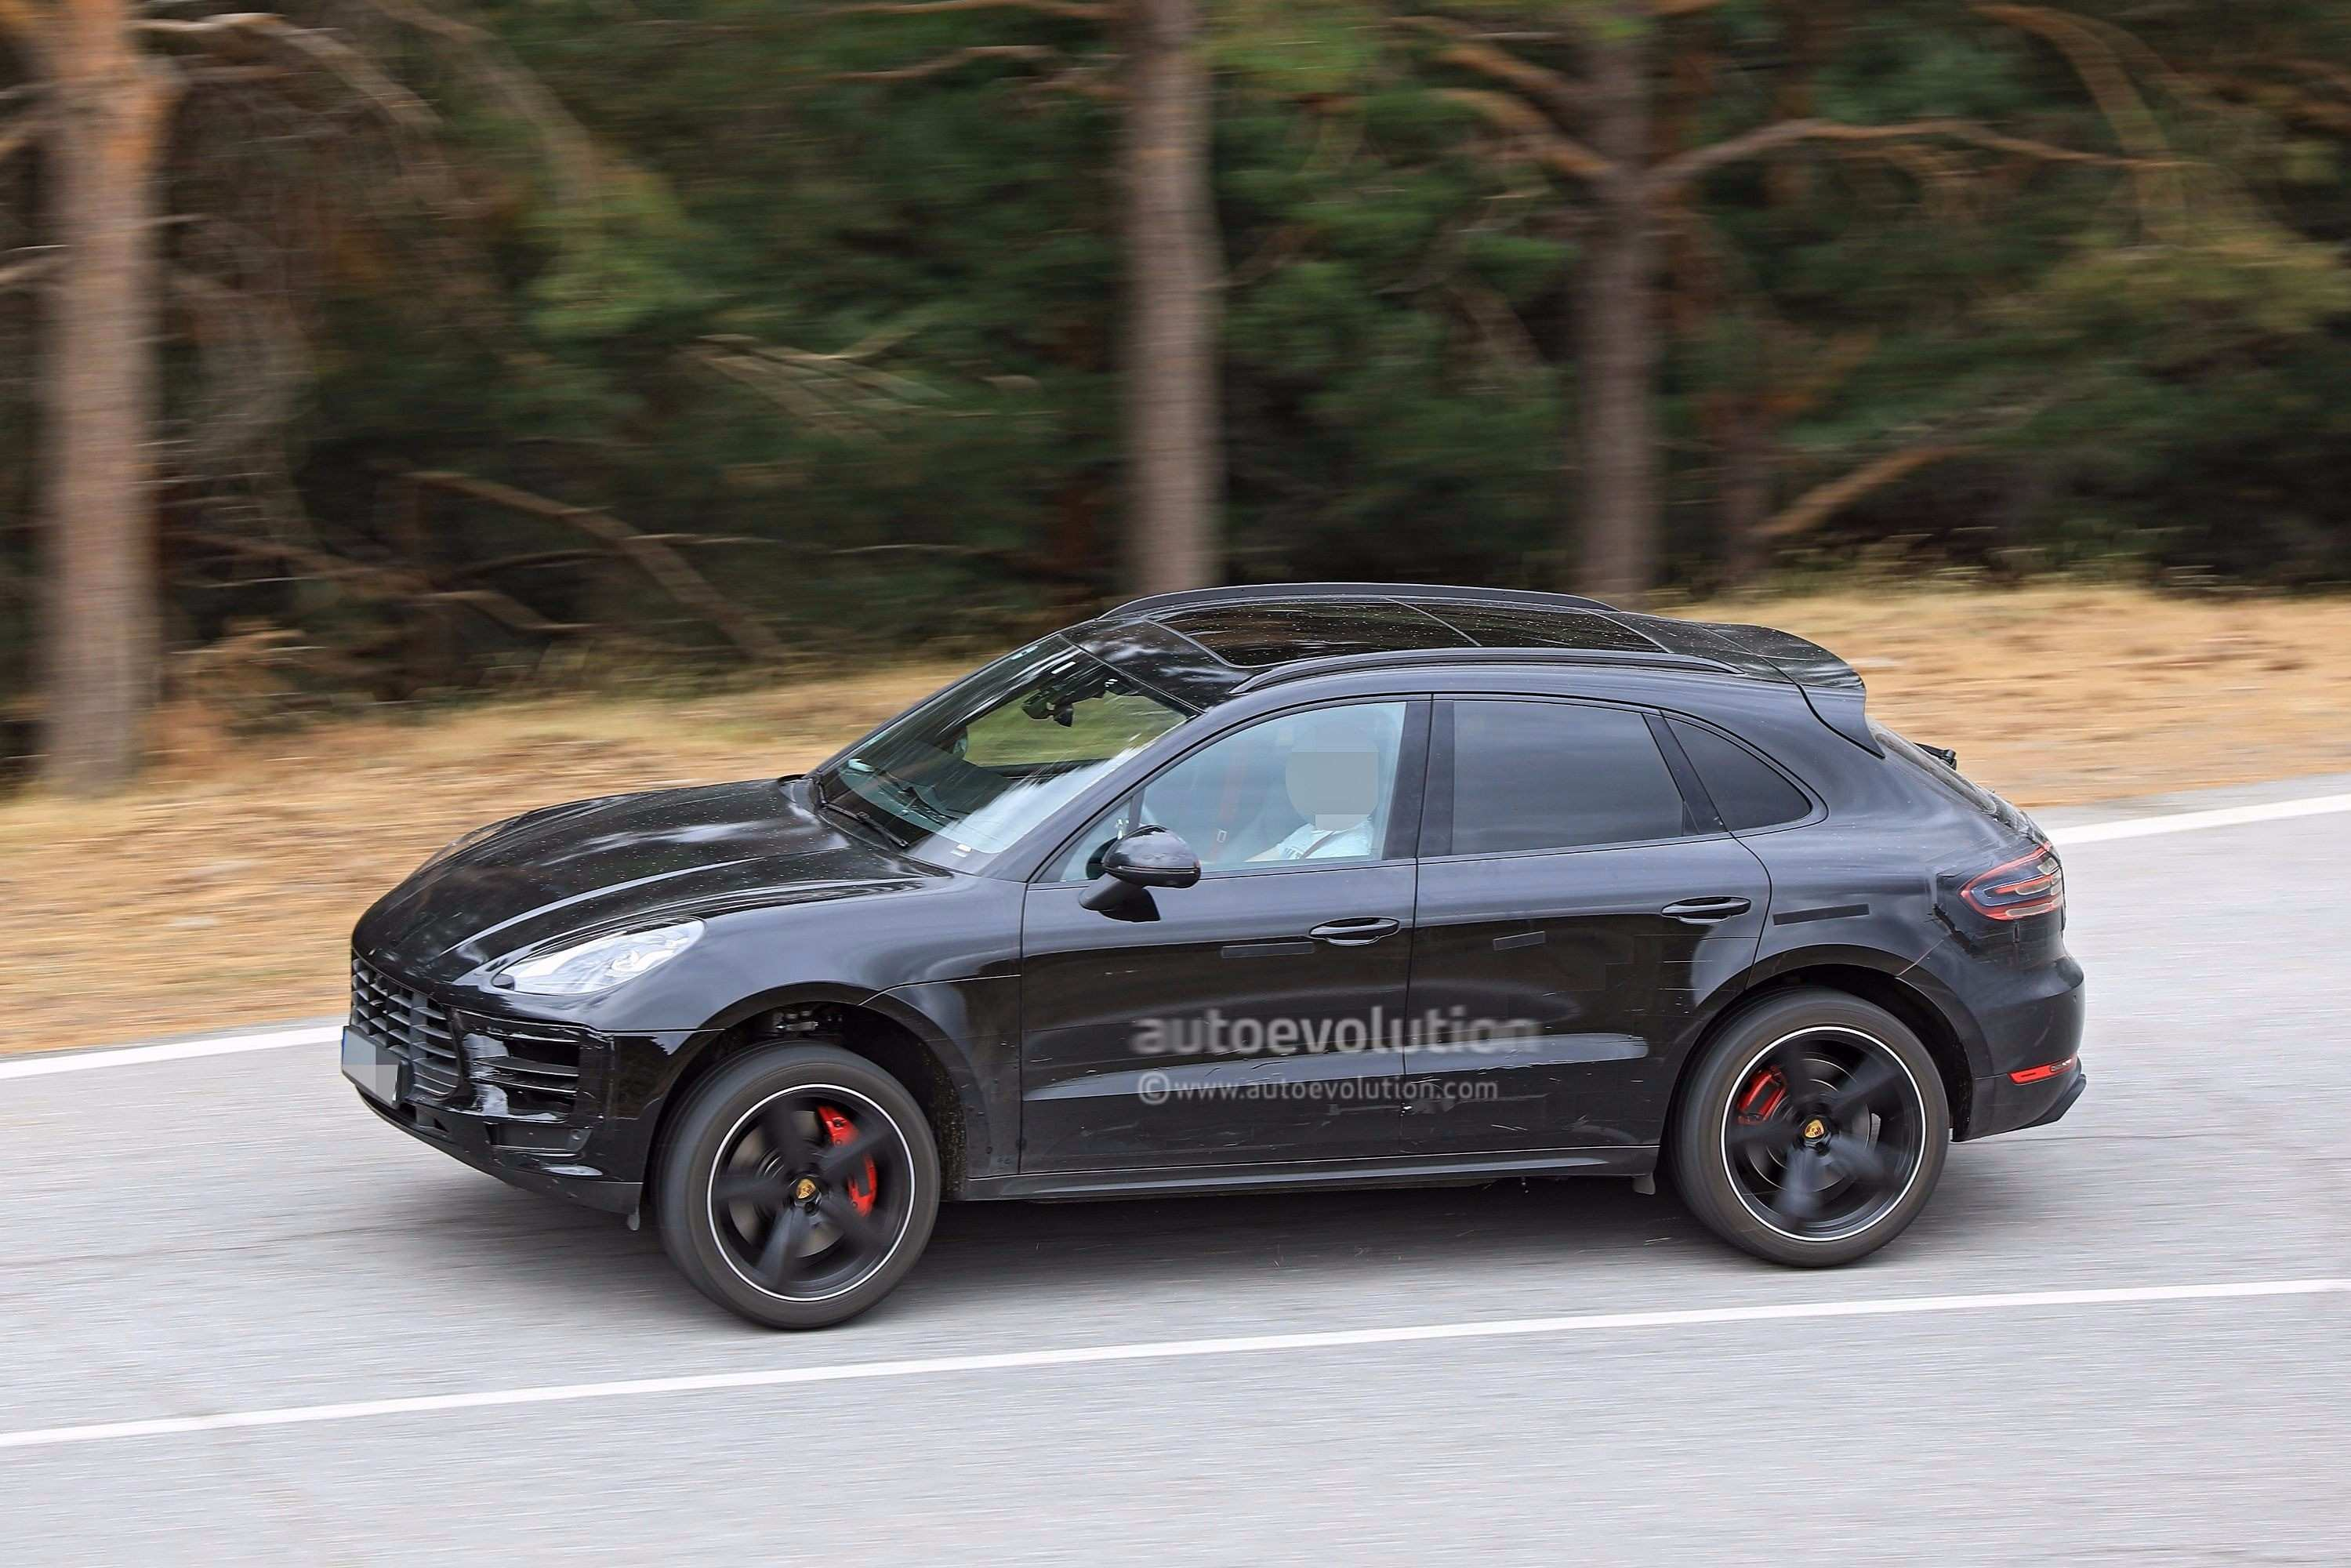 43 Great 2019 Porsche Macan Gts Overview by 2019 Porsche Macan Gts